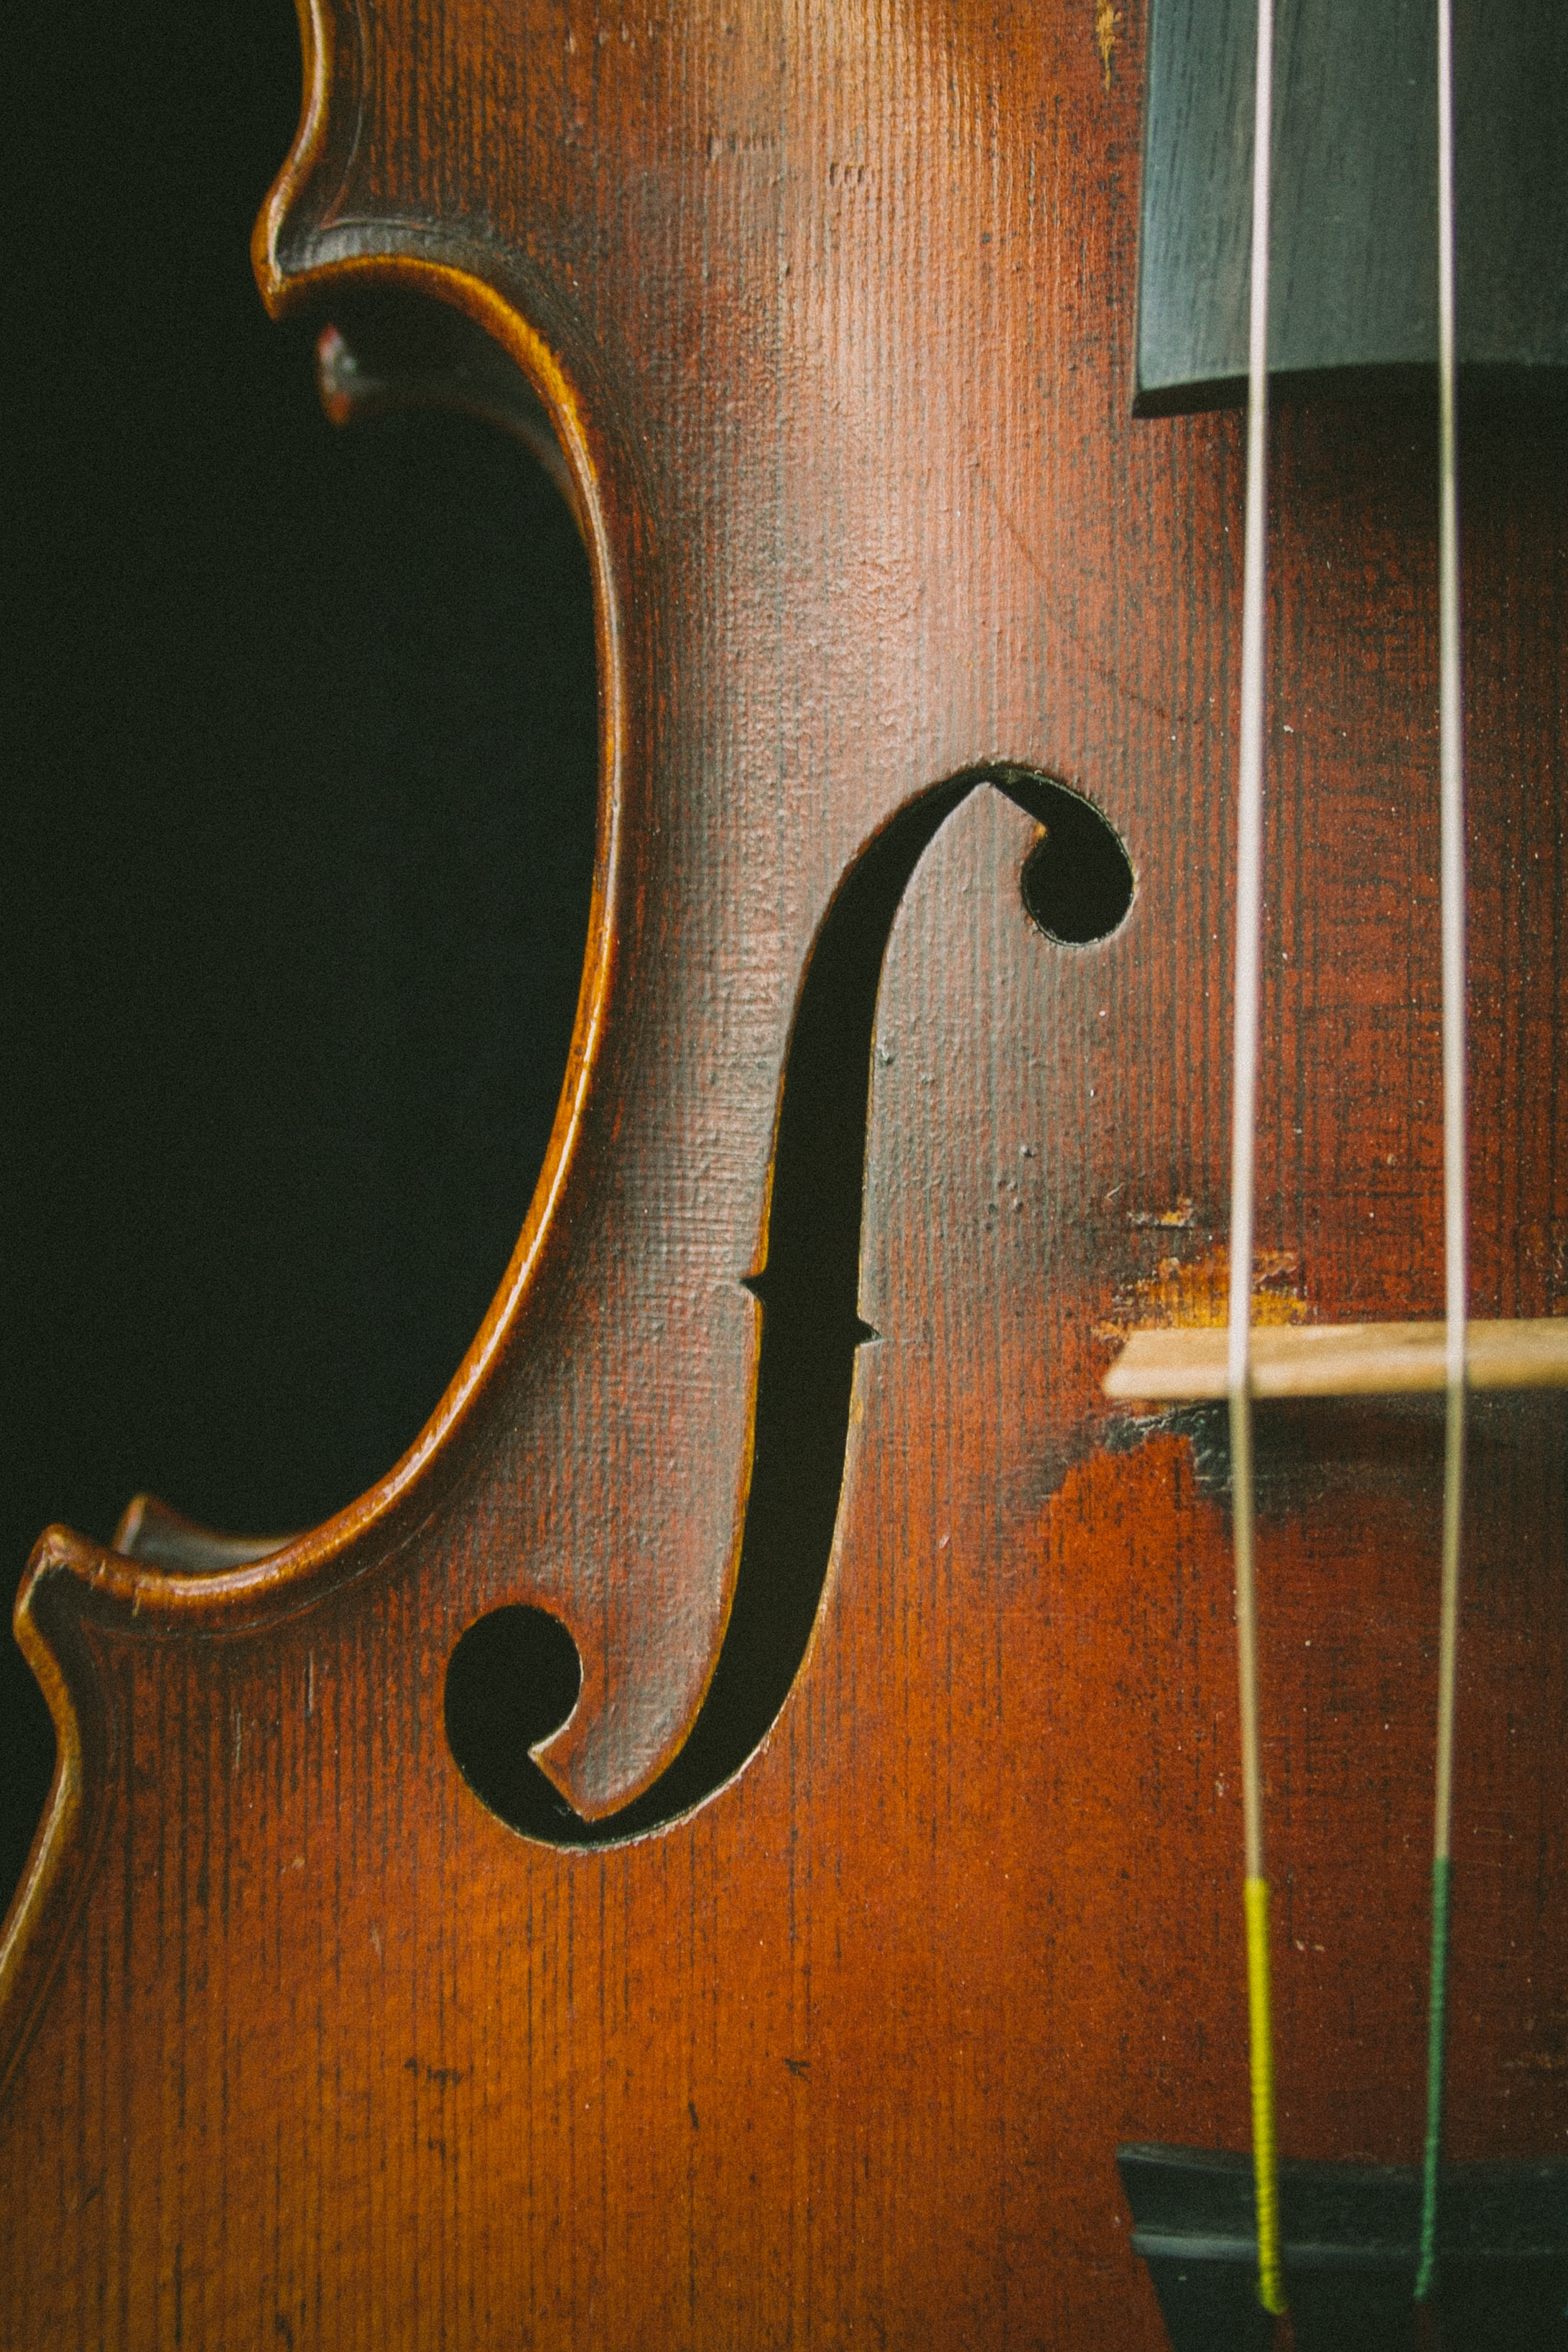 Sonata cello stories